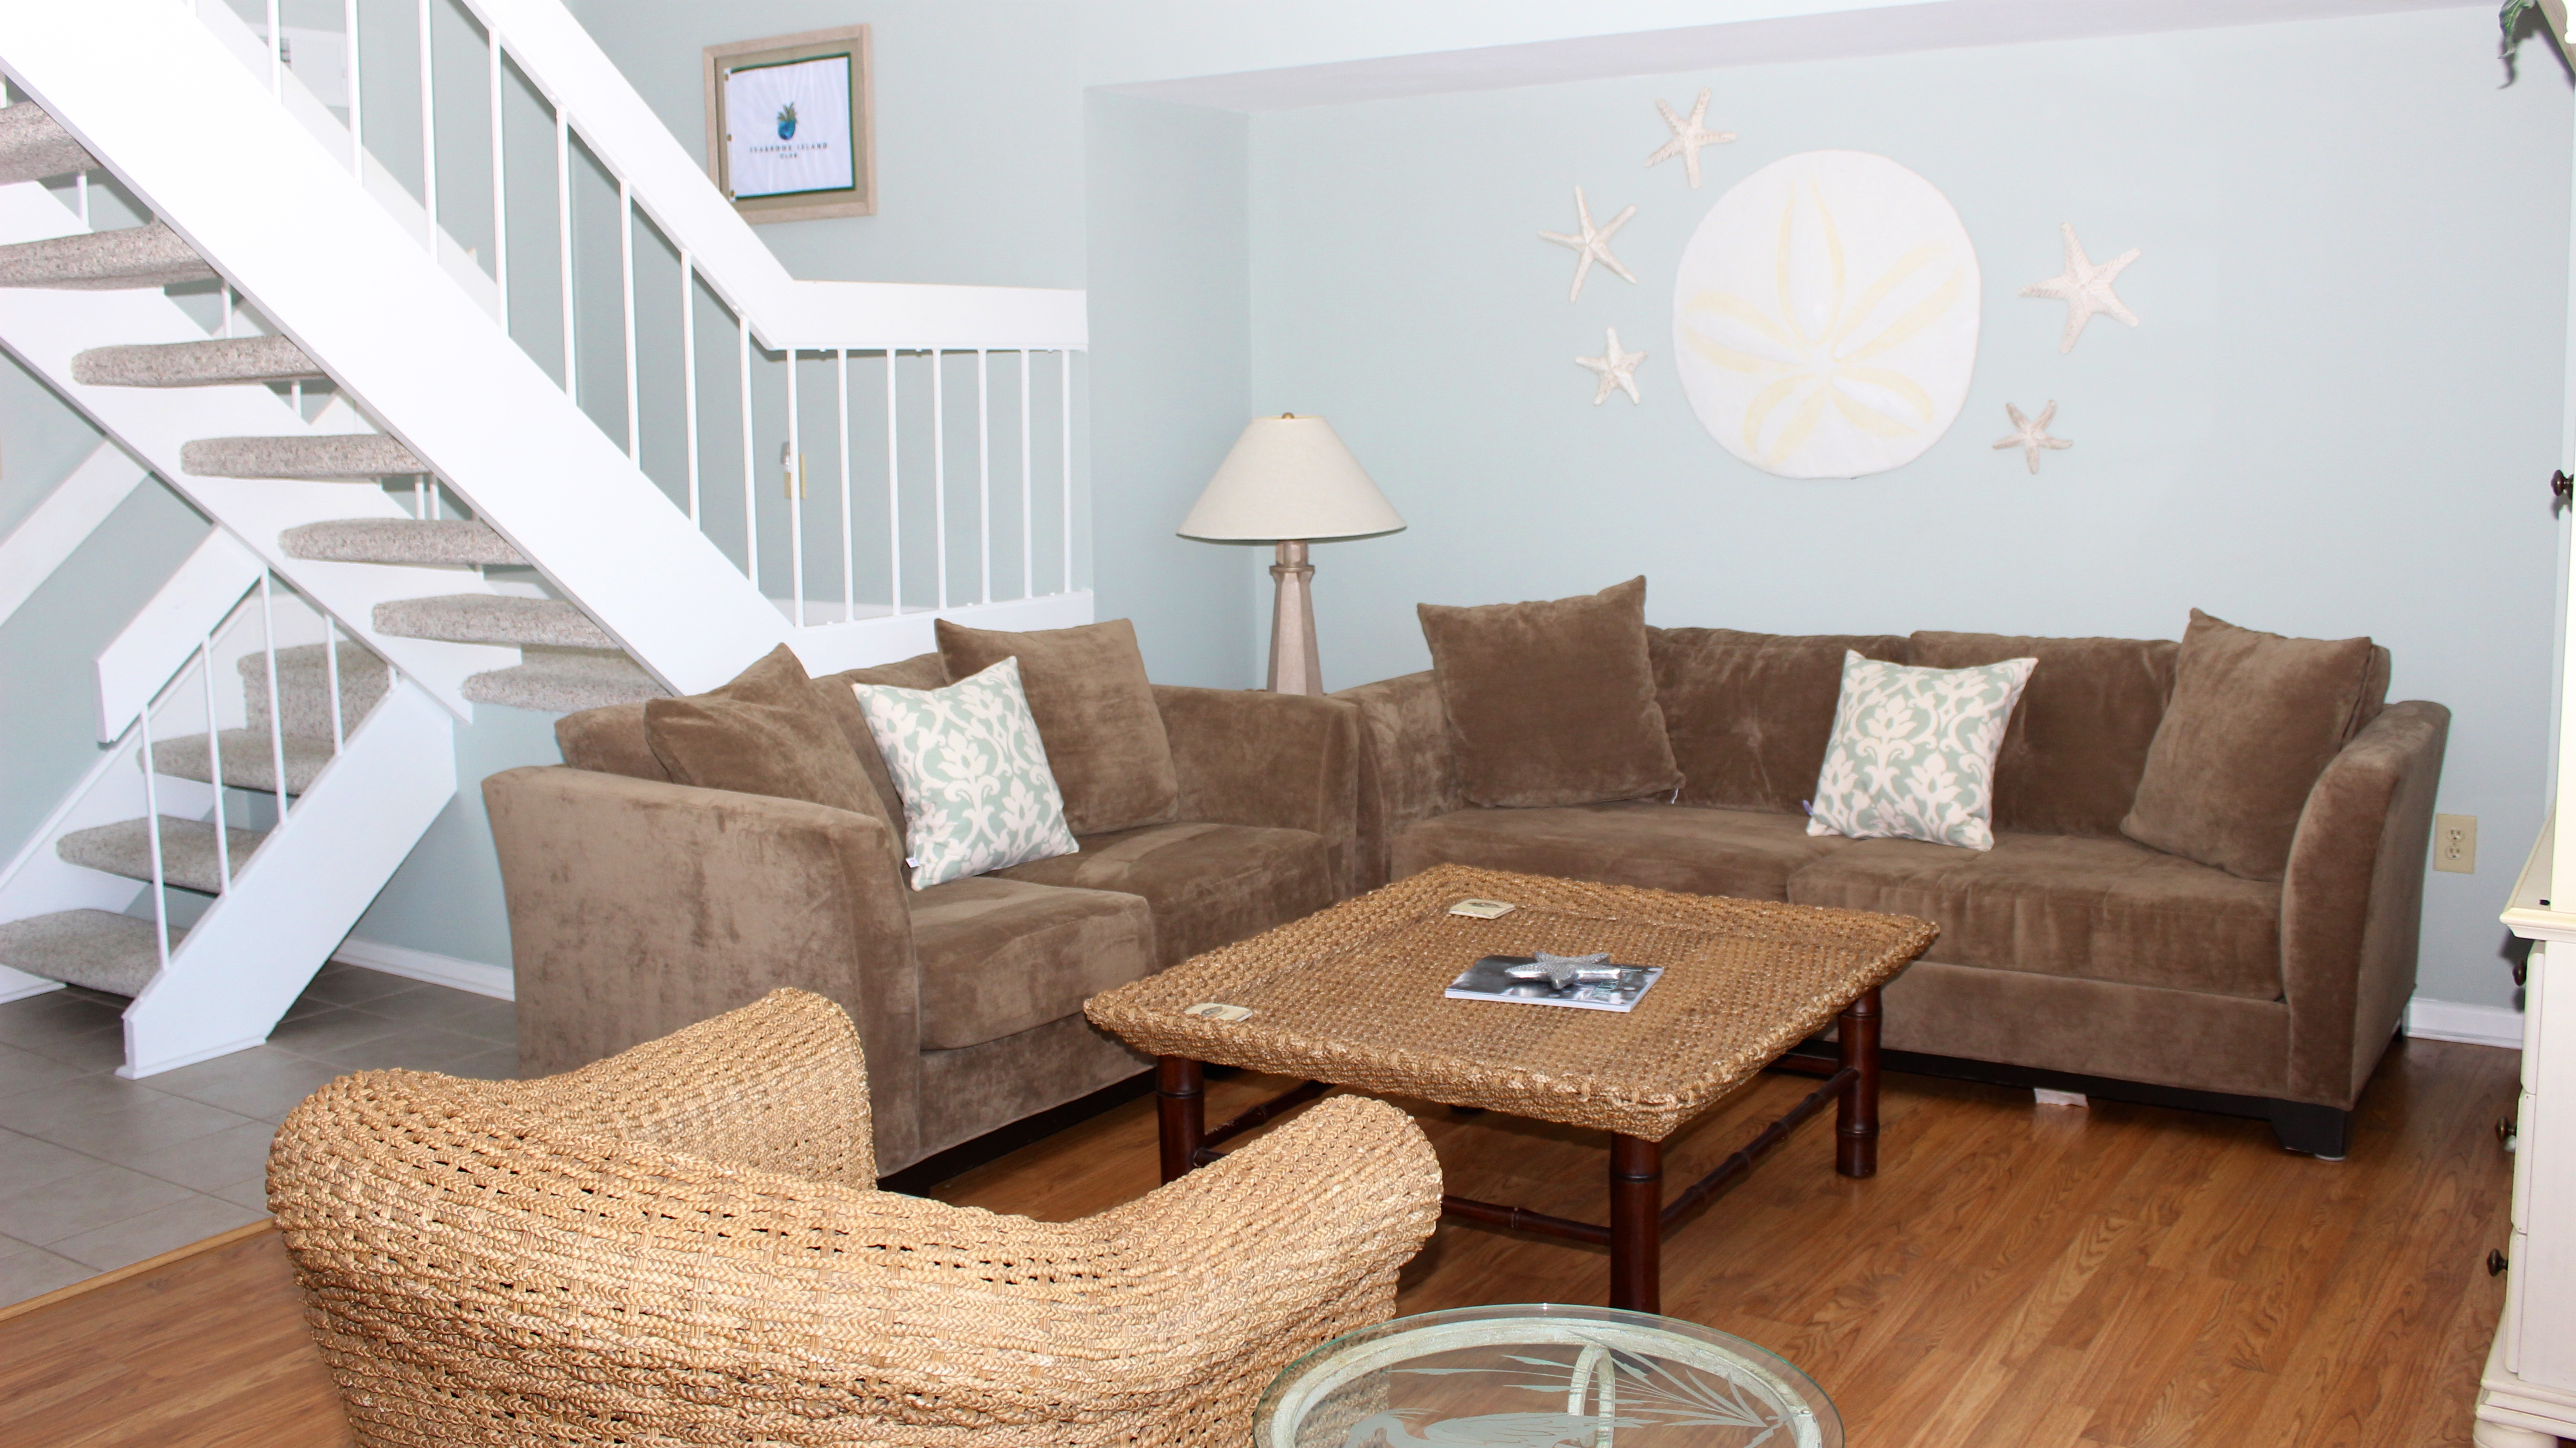 Share stories from your day while relaxing on the comfortable sofas.